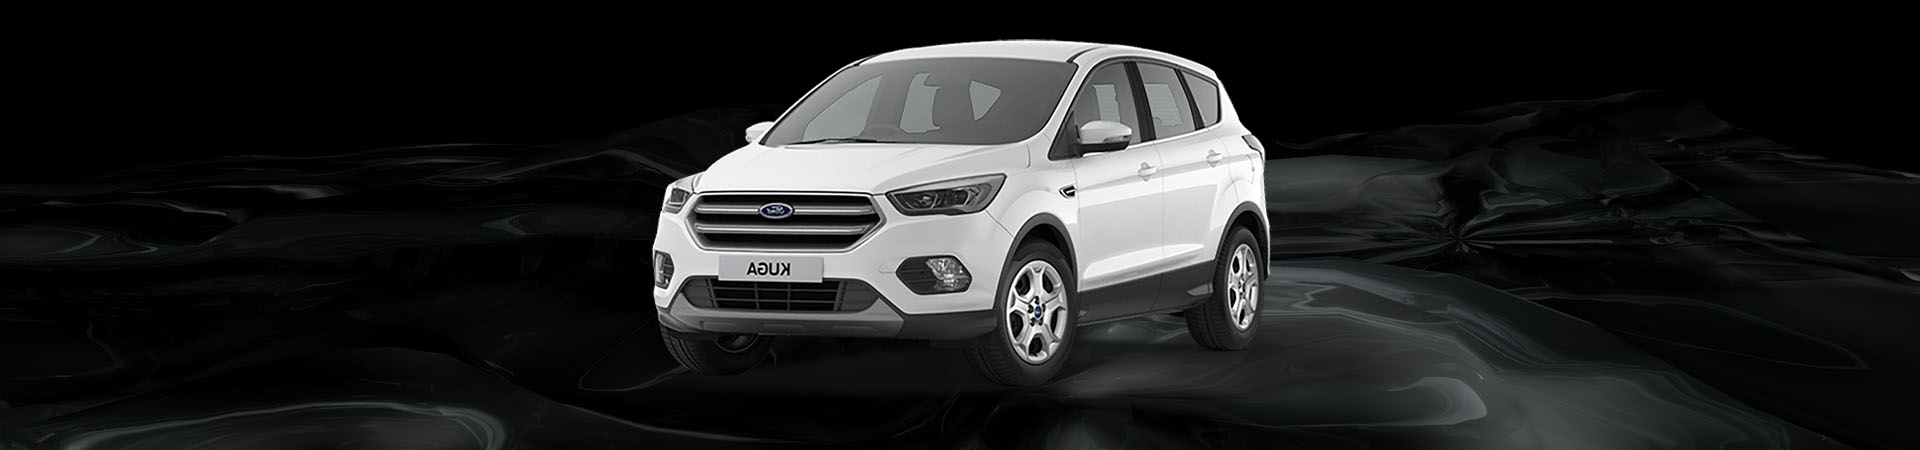 Auto servis Beograd | Ford